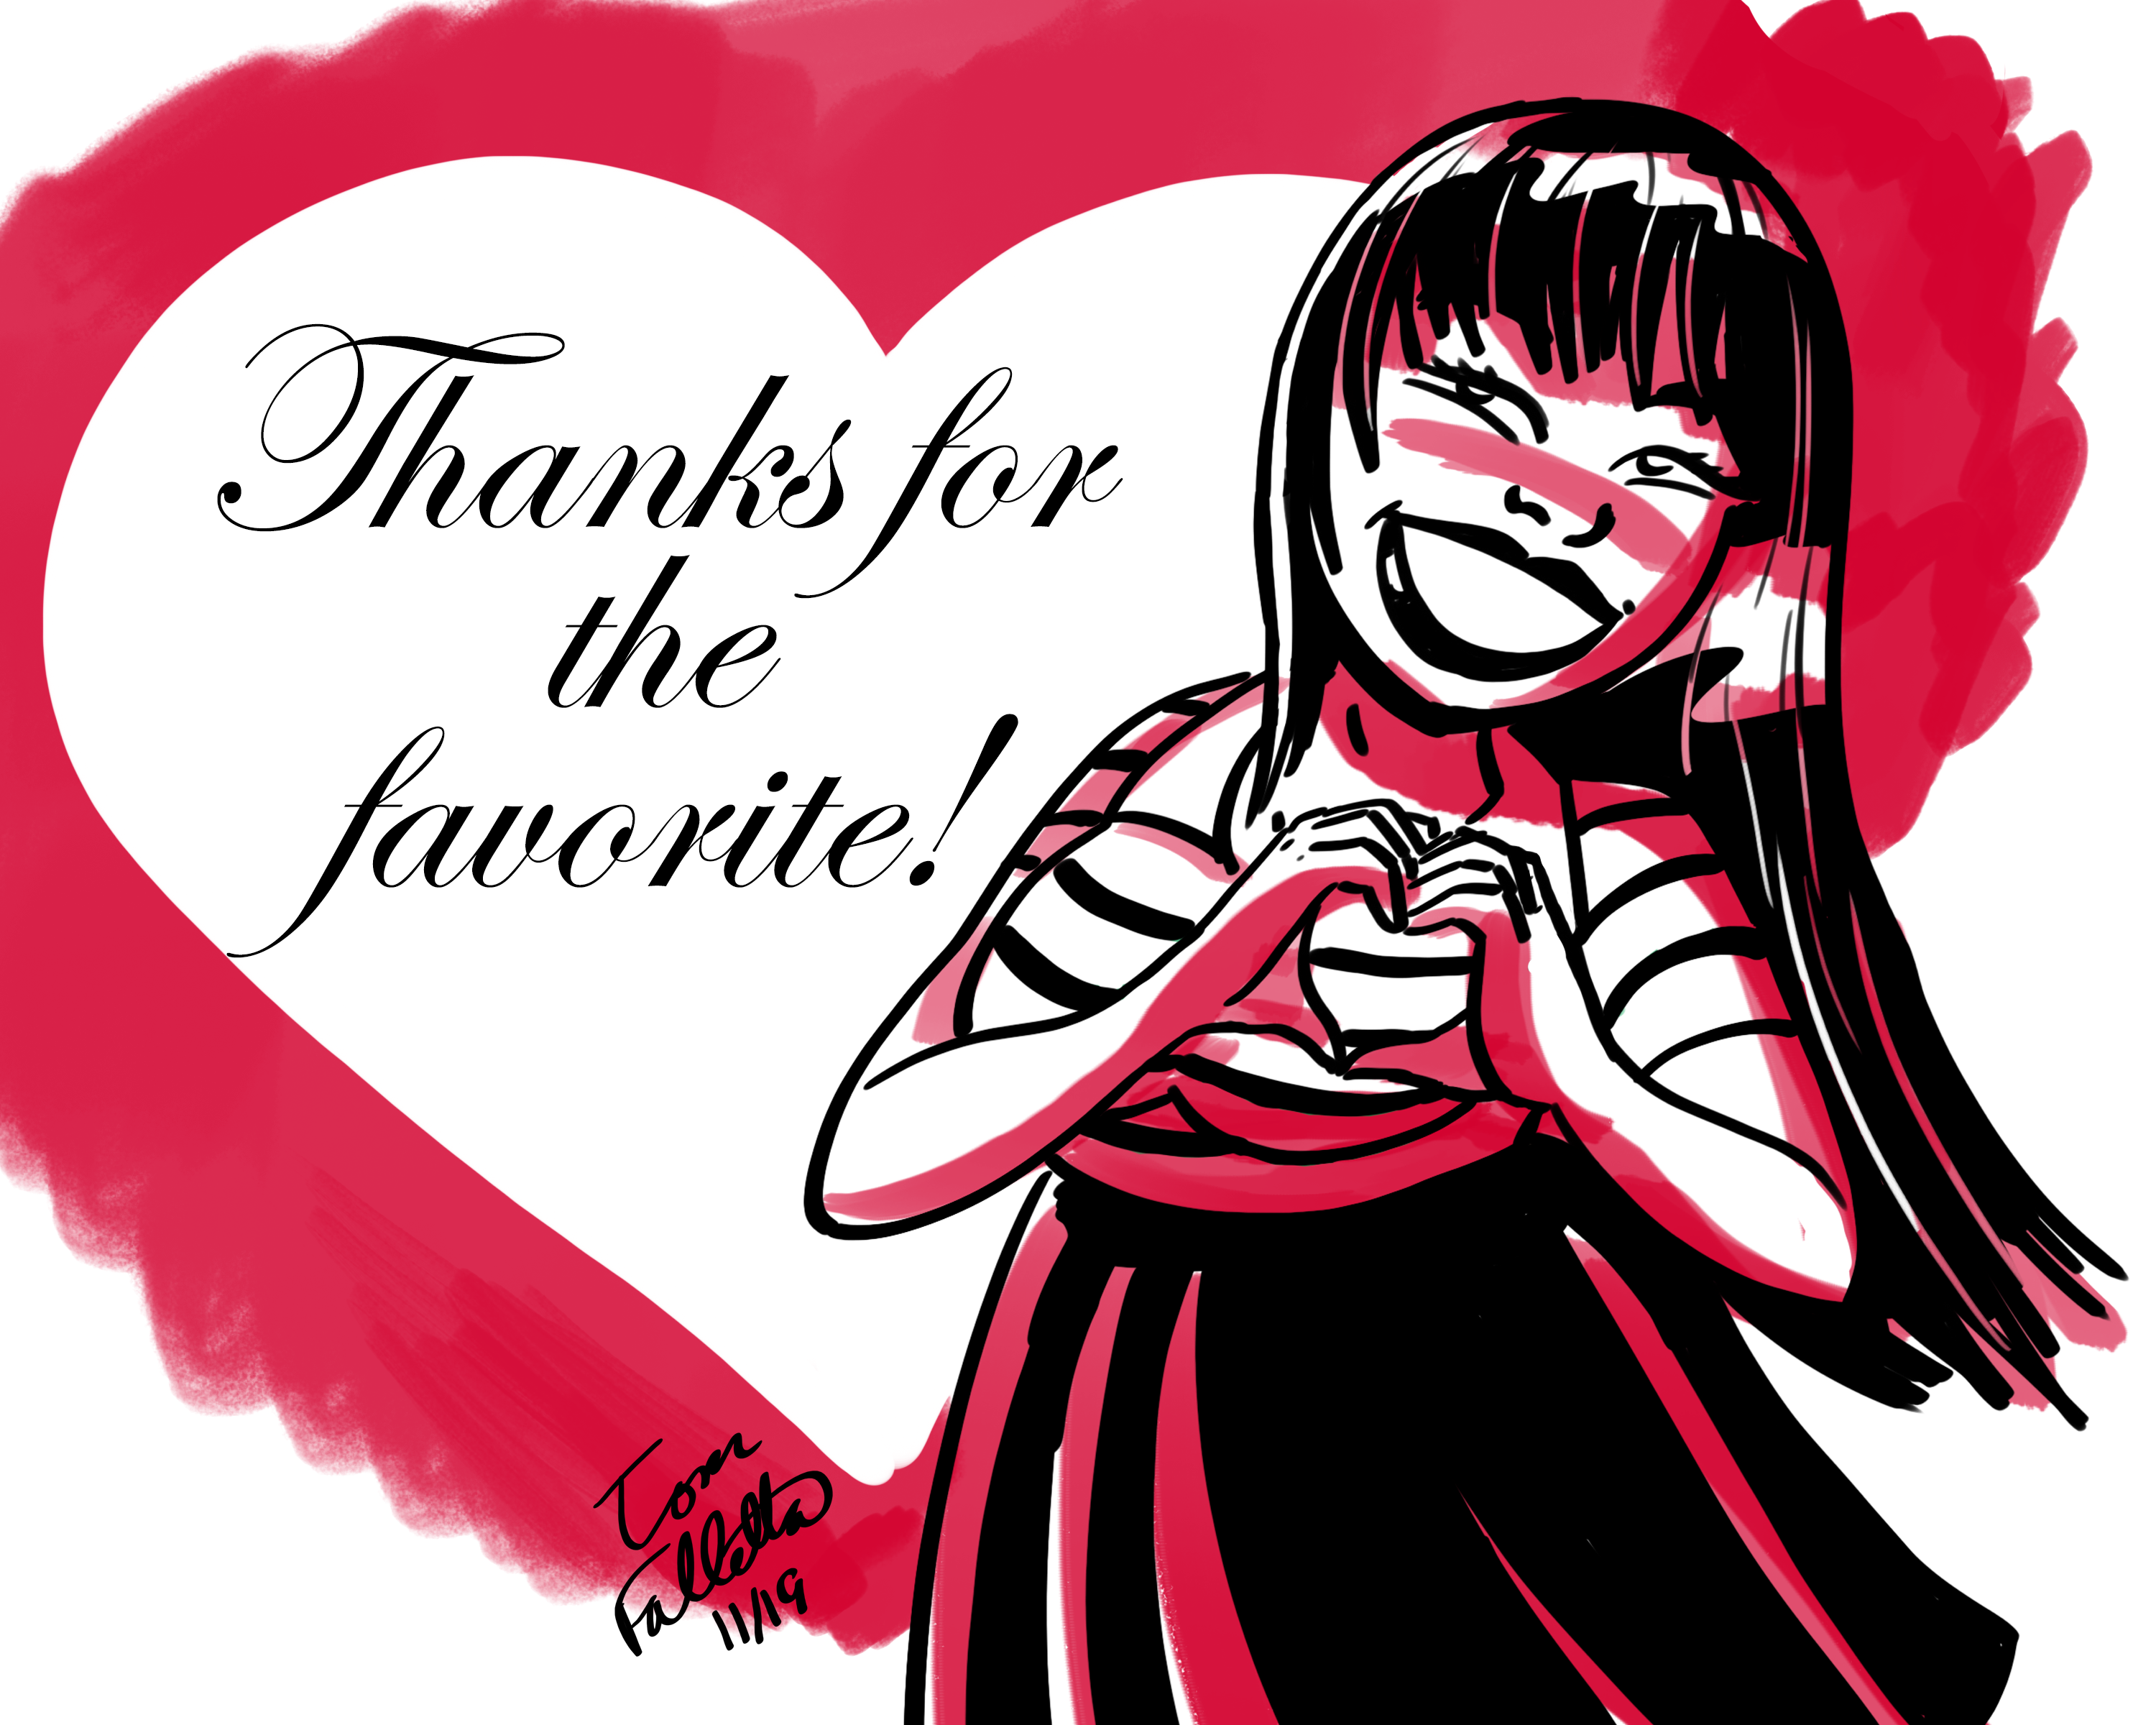 Thanks for the Favorite!